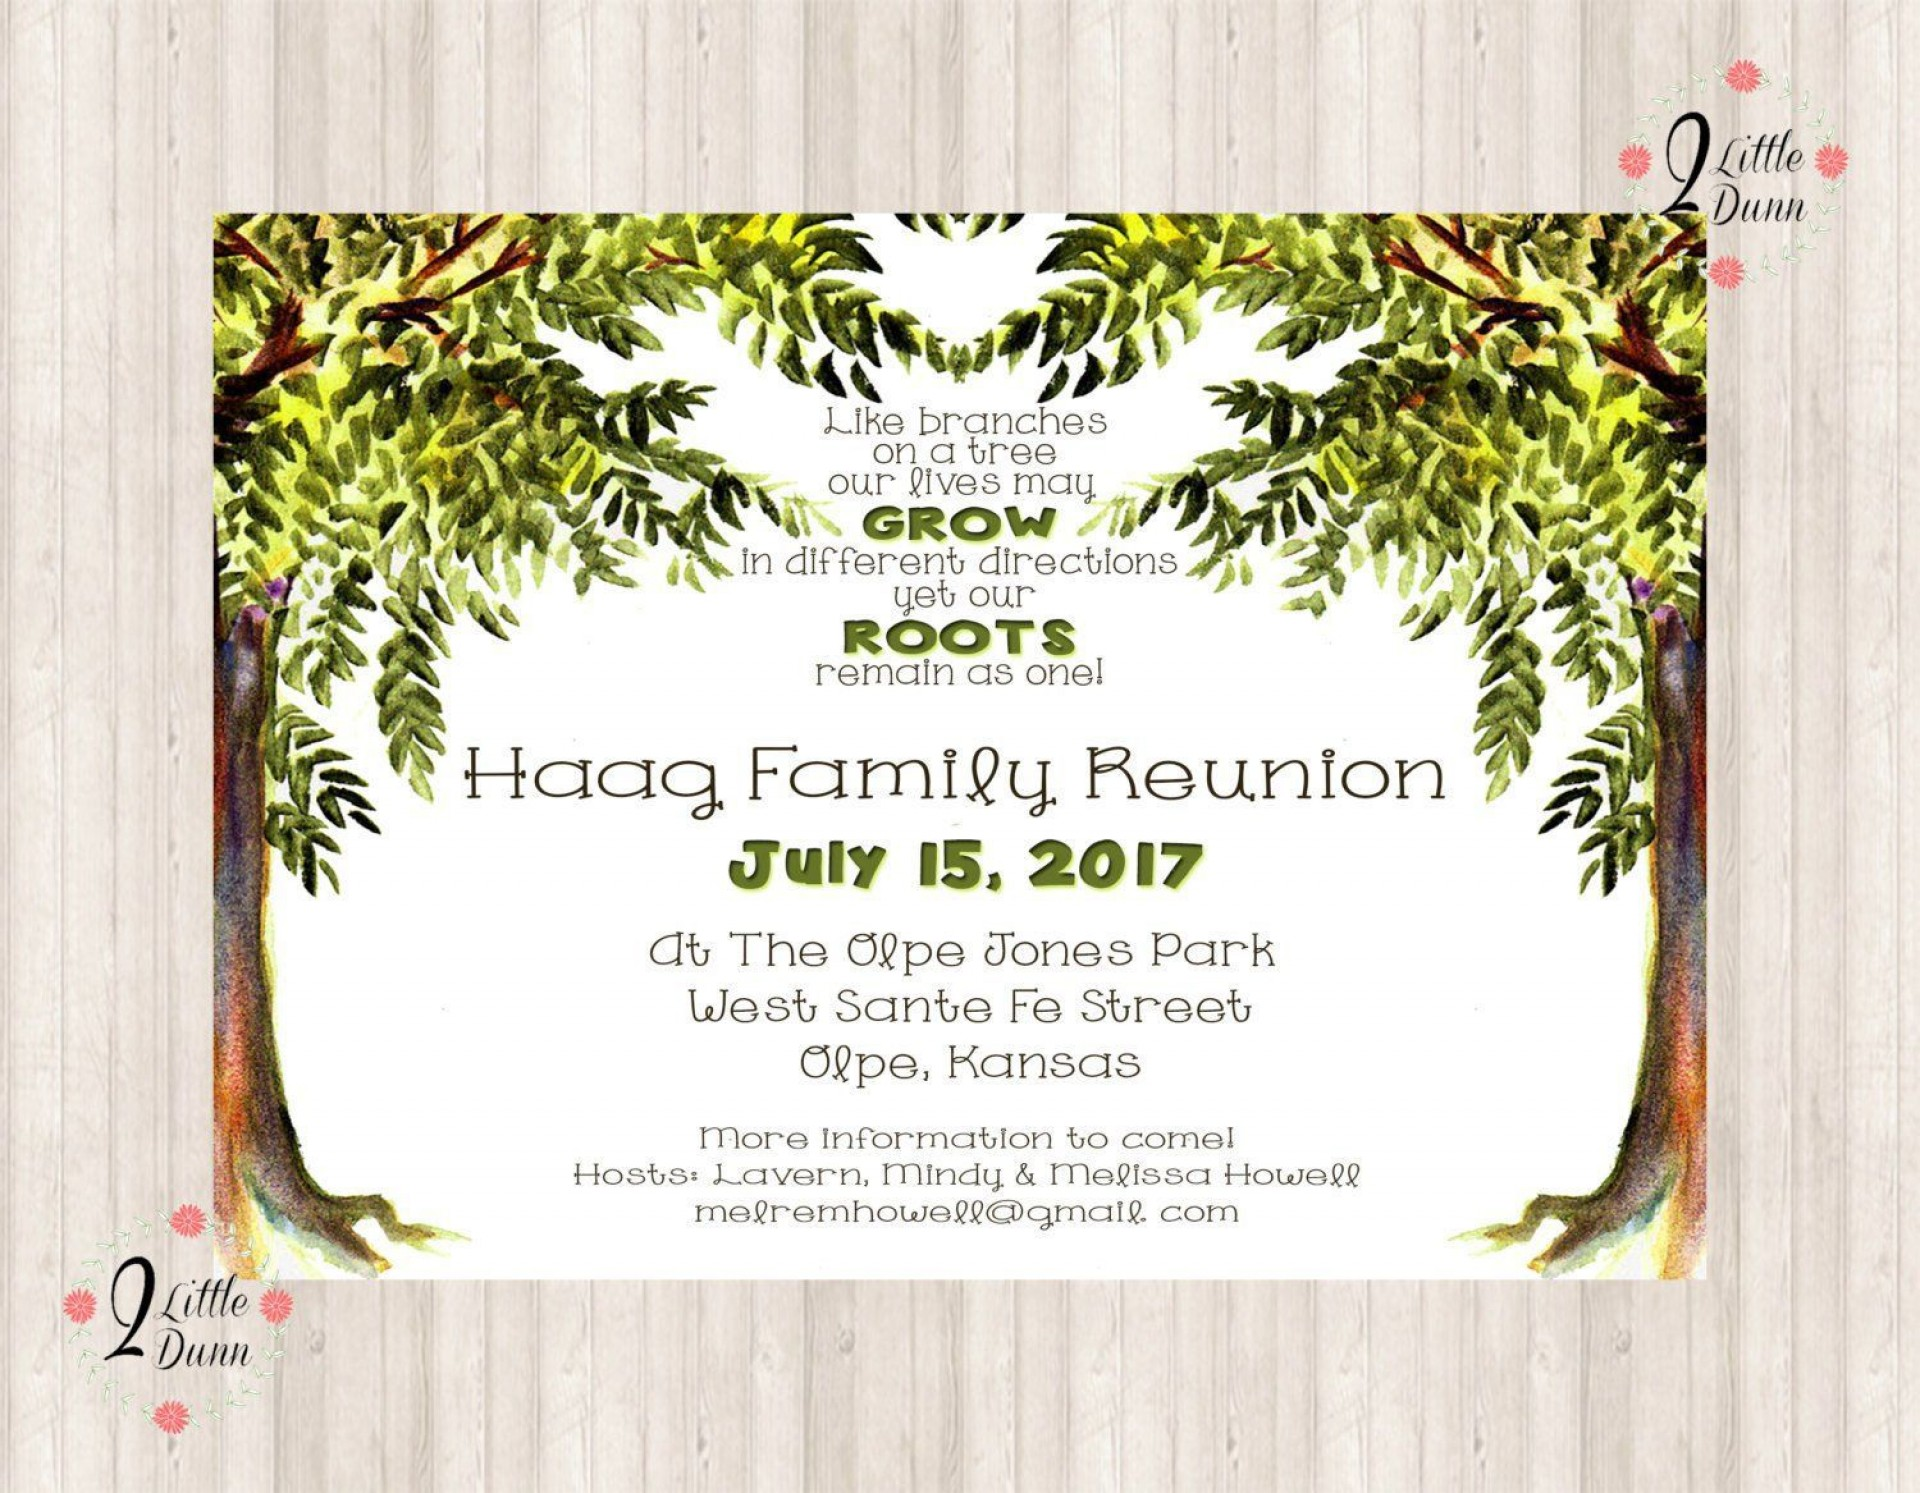 007 Simple Family Reunion Invitation Template Free Highest Quality  For Word Online1920